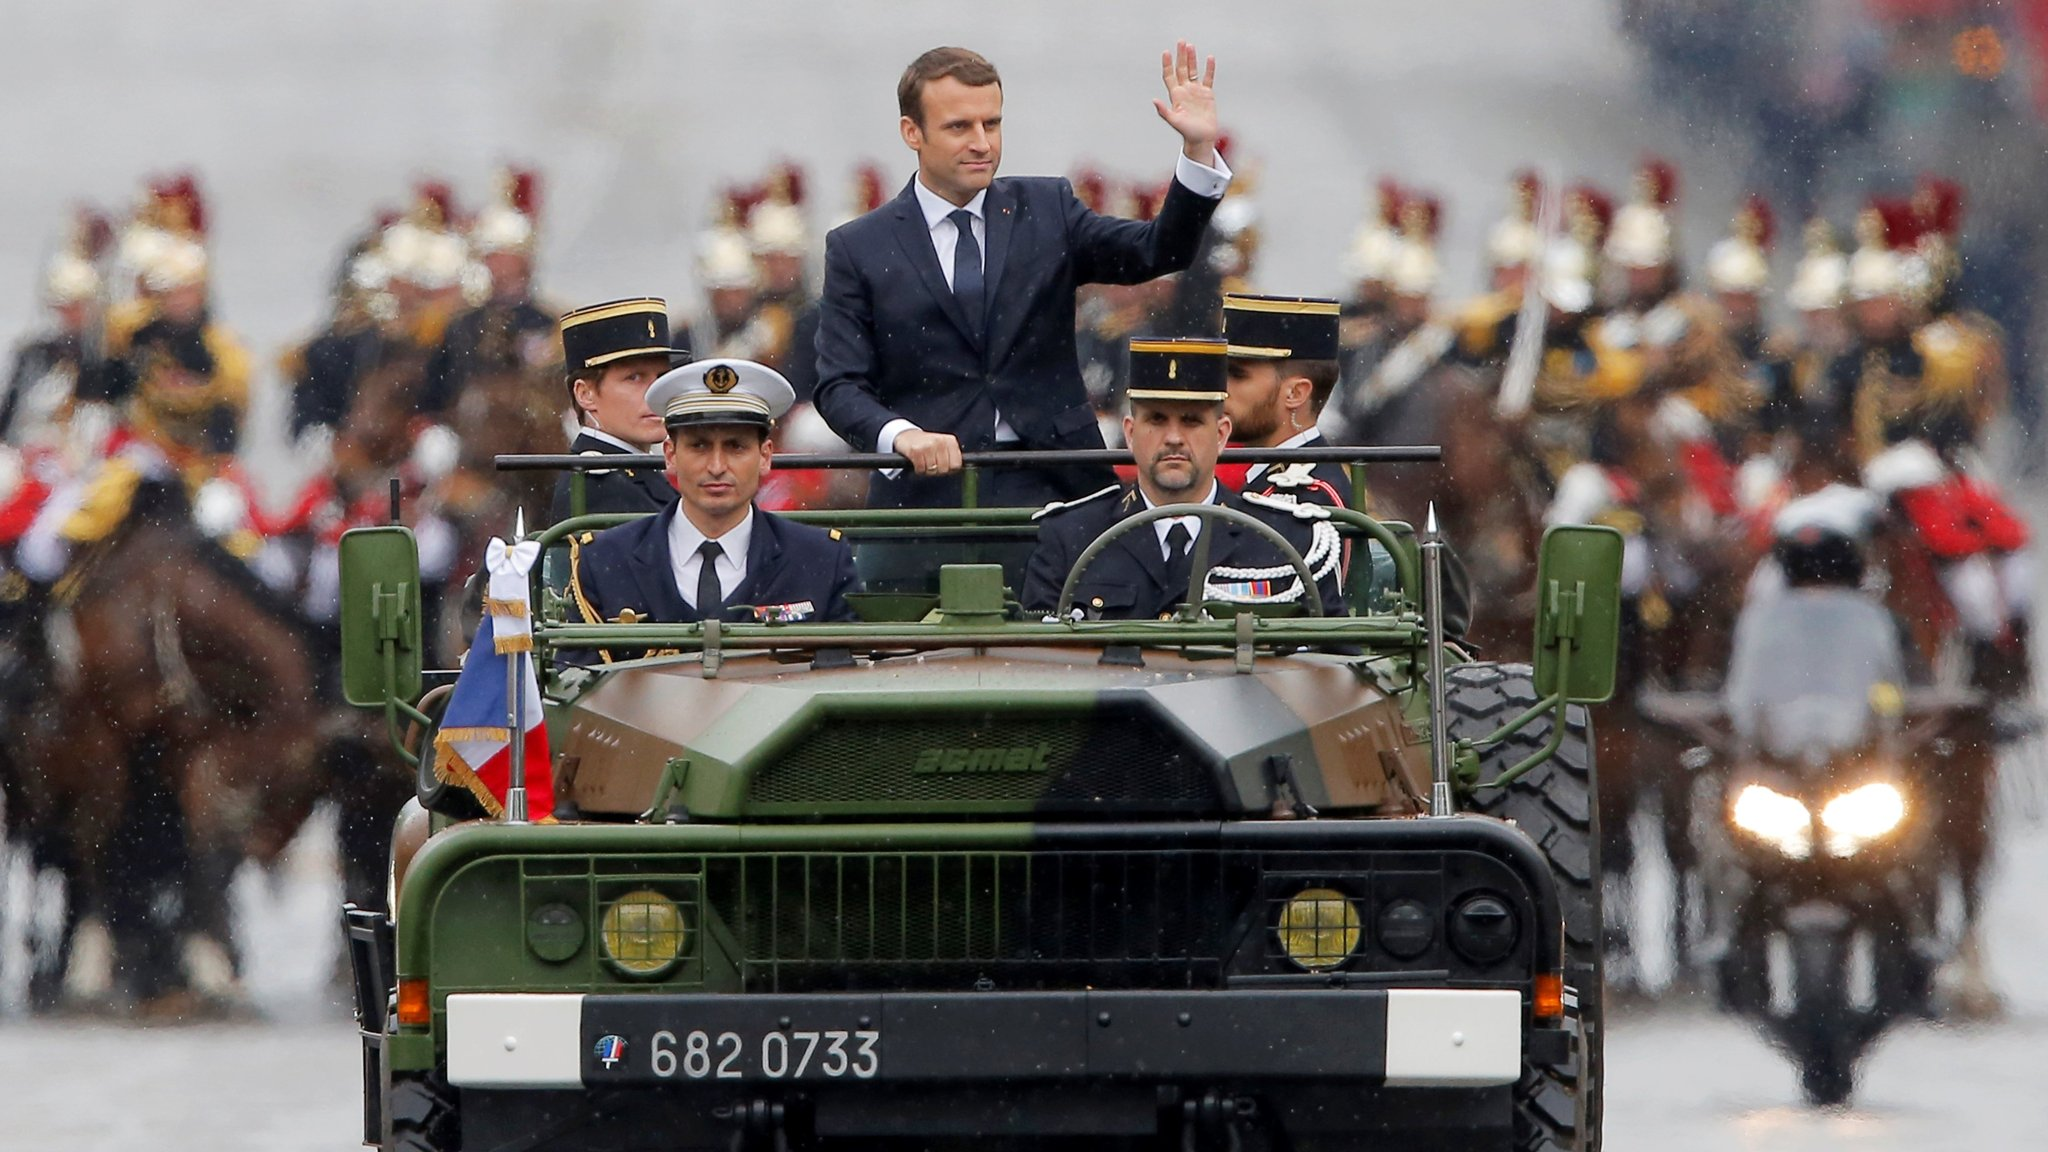 The Sun King Macron Burnishes His Presidential Image Financial Times